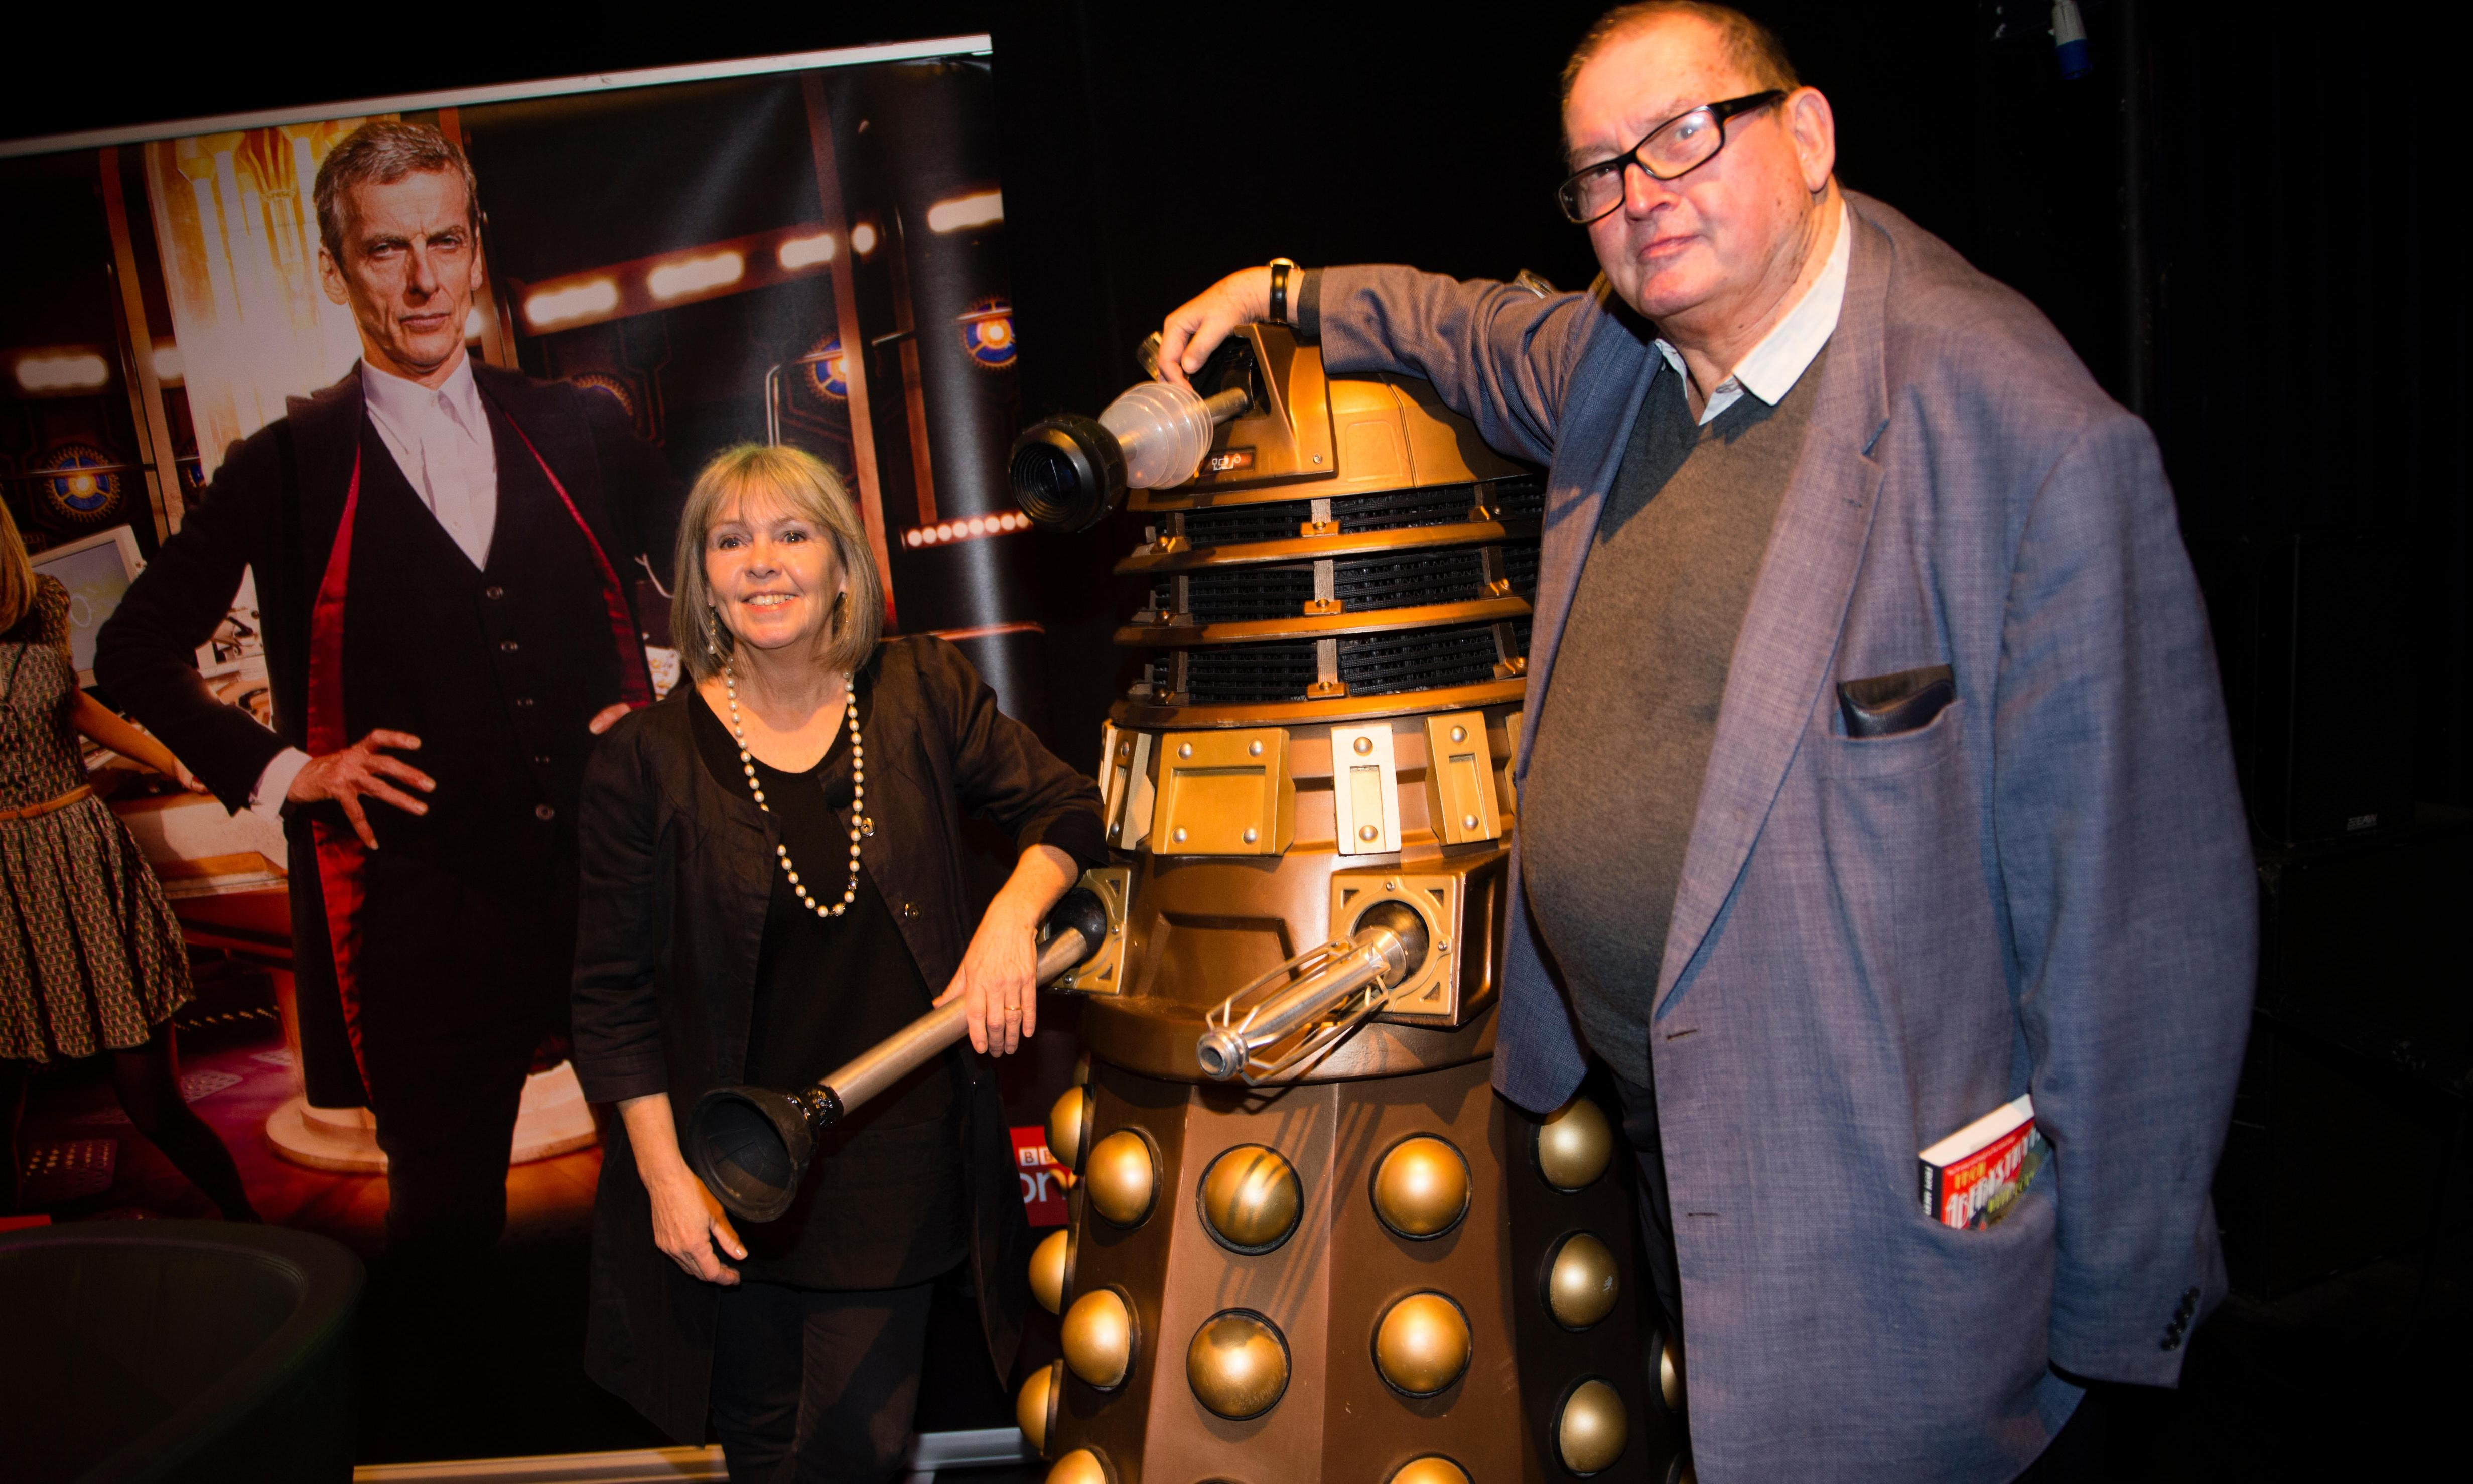 Doctor Who writer and script editor Terrance Dicks dies aged 84